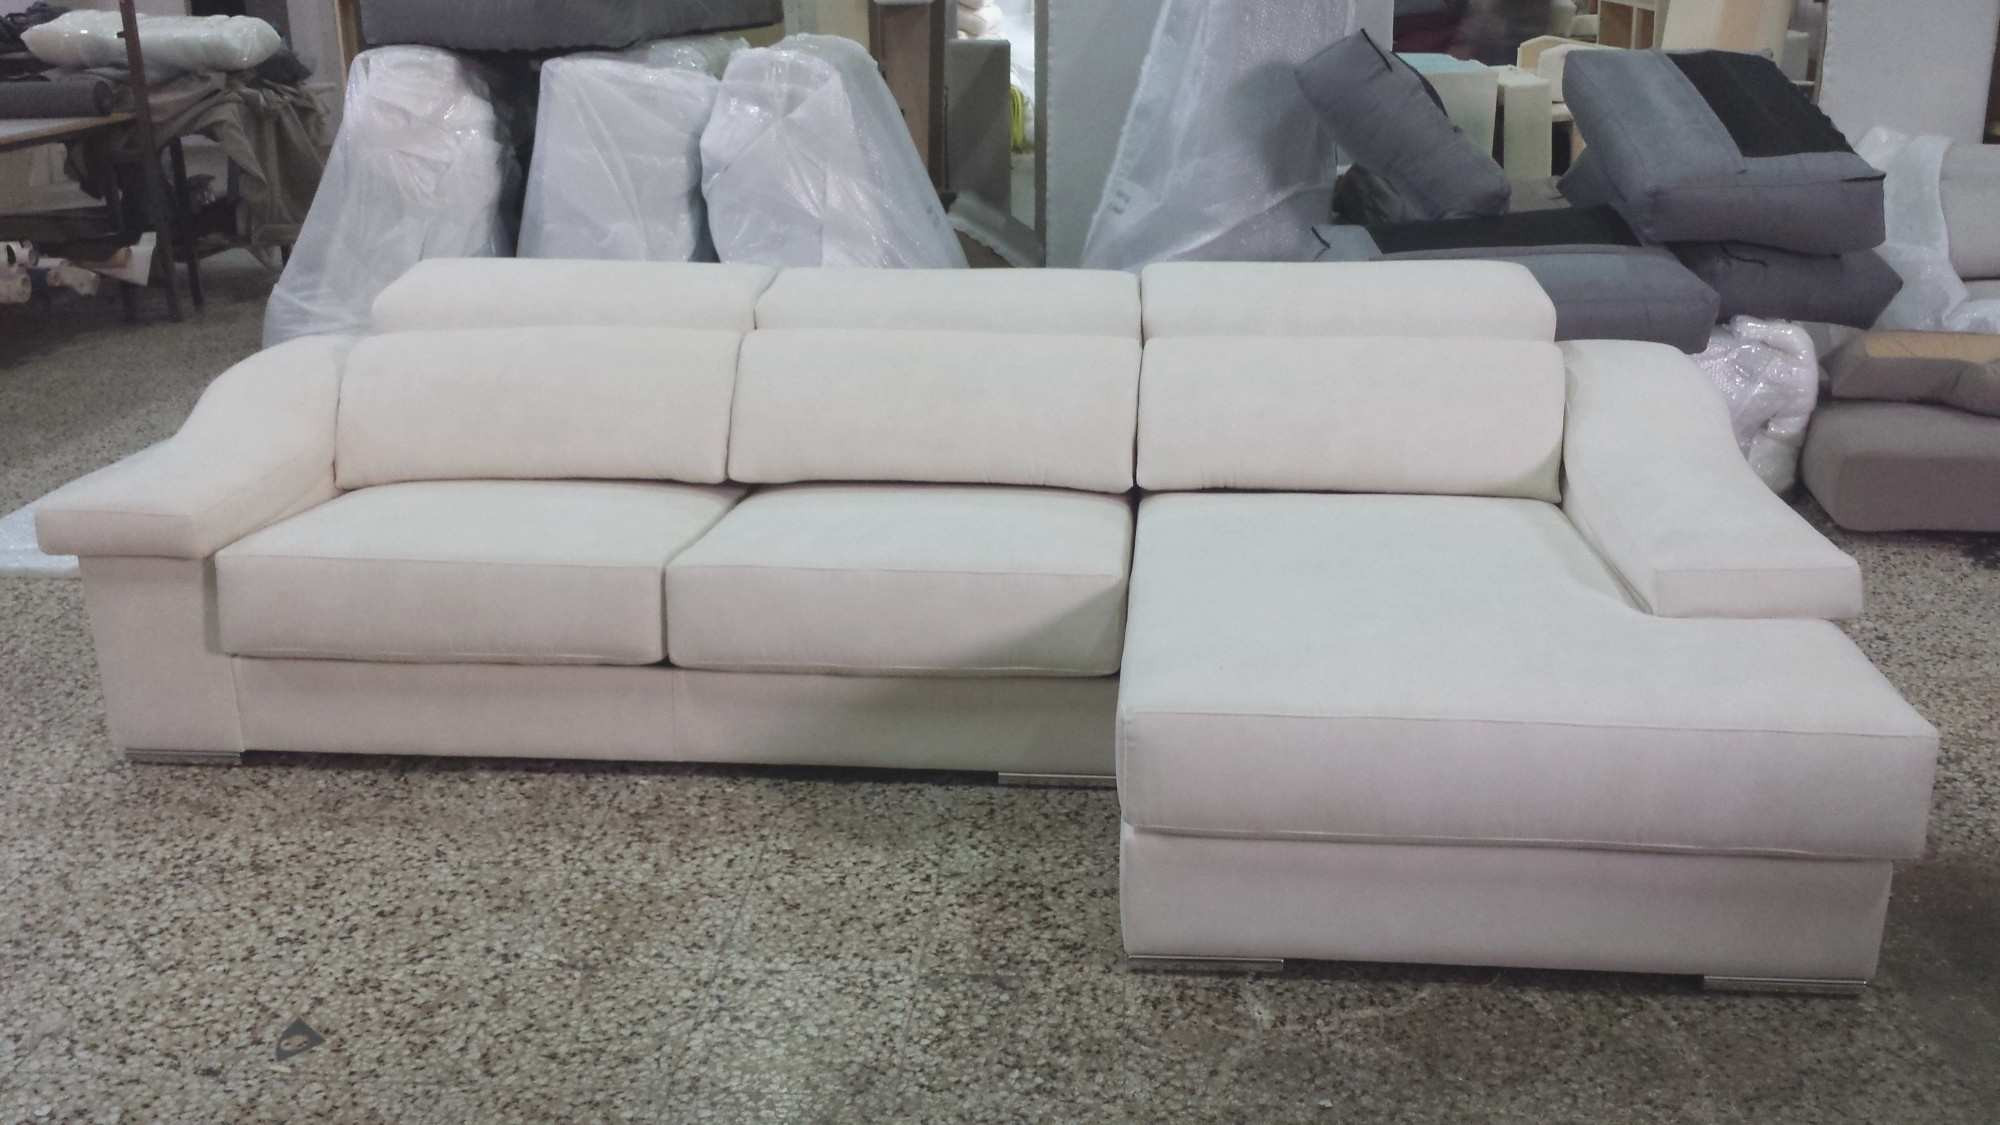 Sofa Chaise Longue Barato Magnífica Hermosa sofas Chaise Longue Baratos Barcelona Of 49  Mejor sofa Chaise Longue Barato